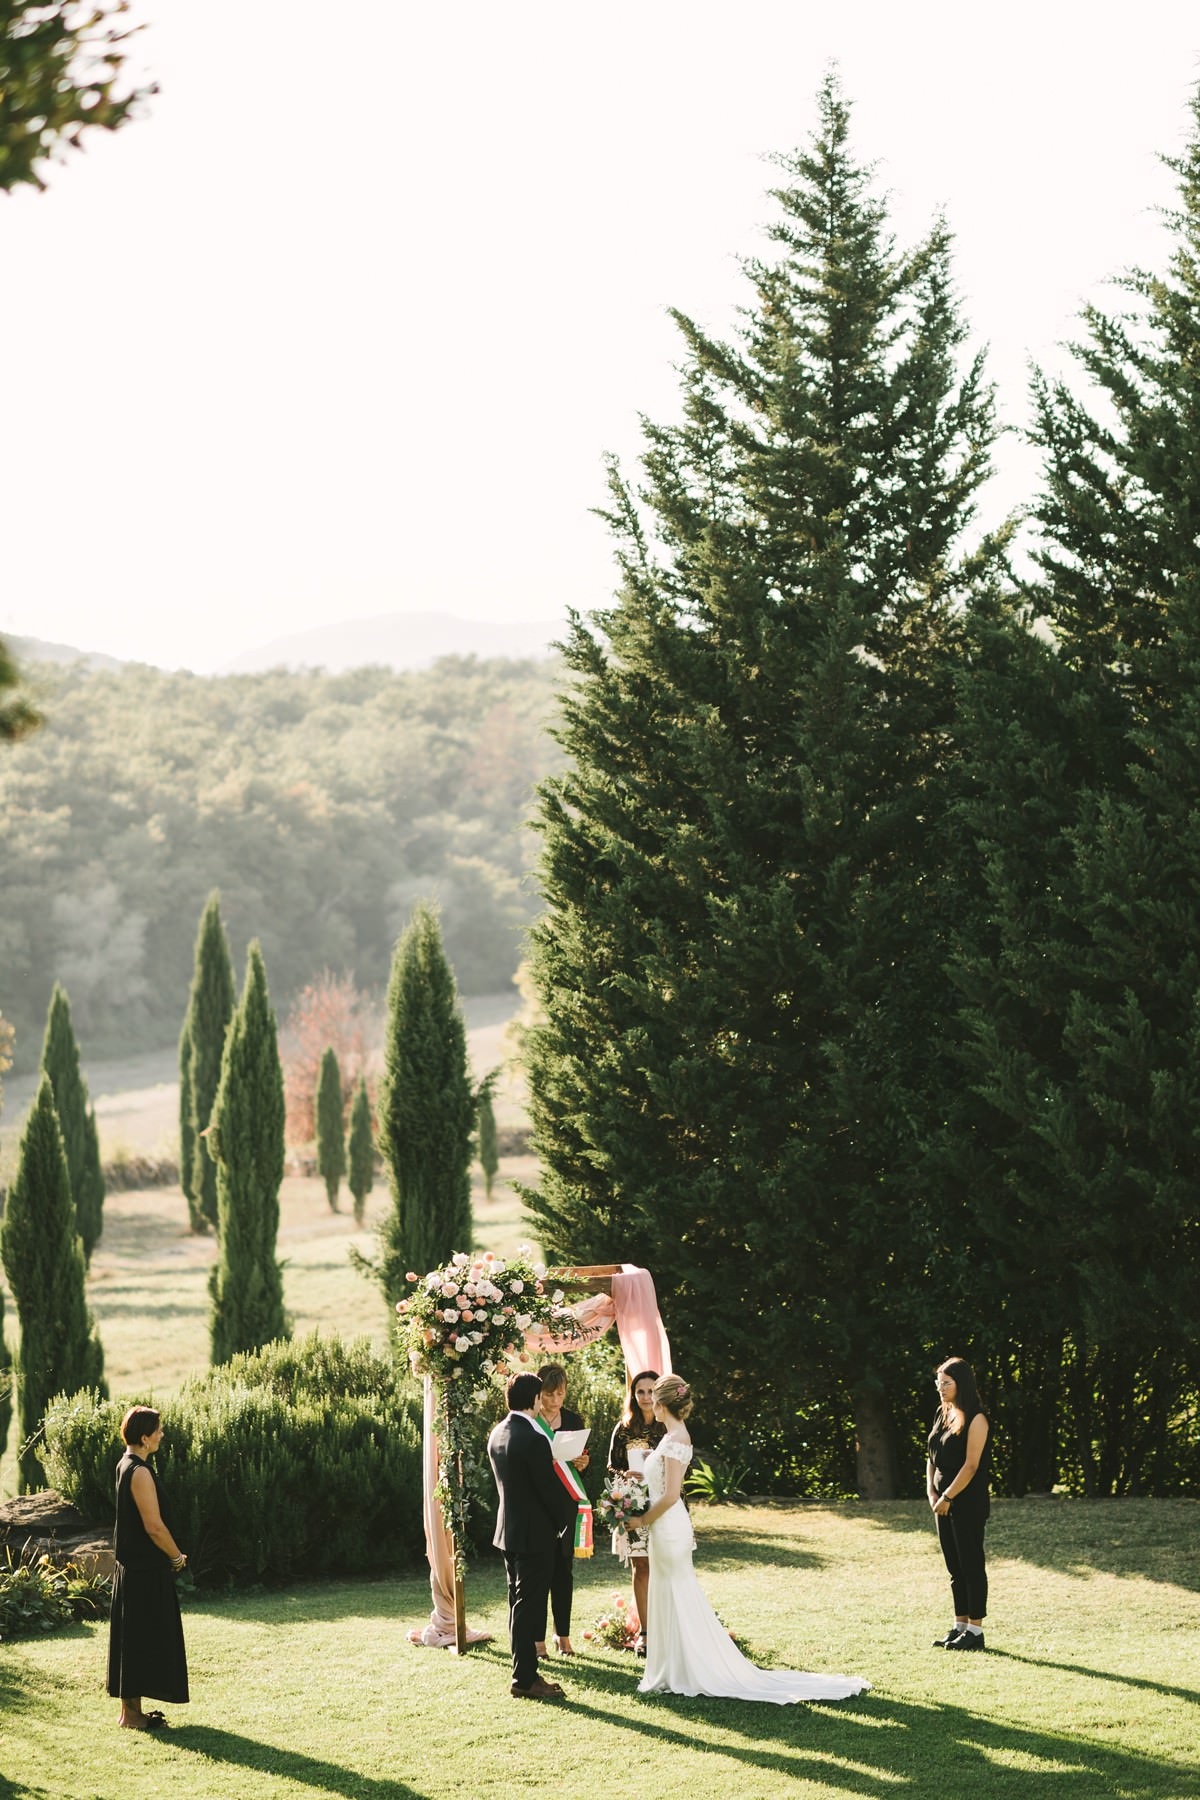 Evocative outdoor elopement wedding civil ceremony in Tuscany countryside Villa La Selva Wine Resort